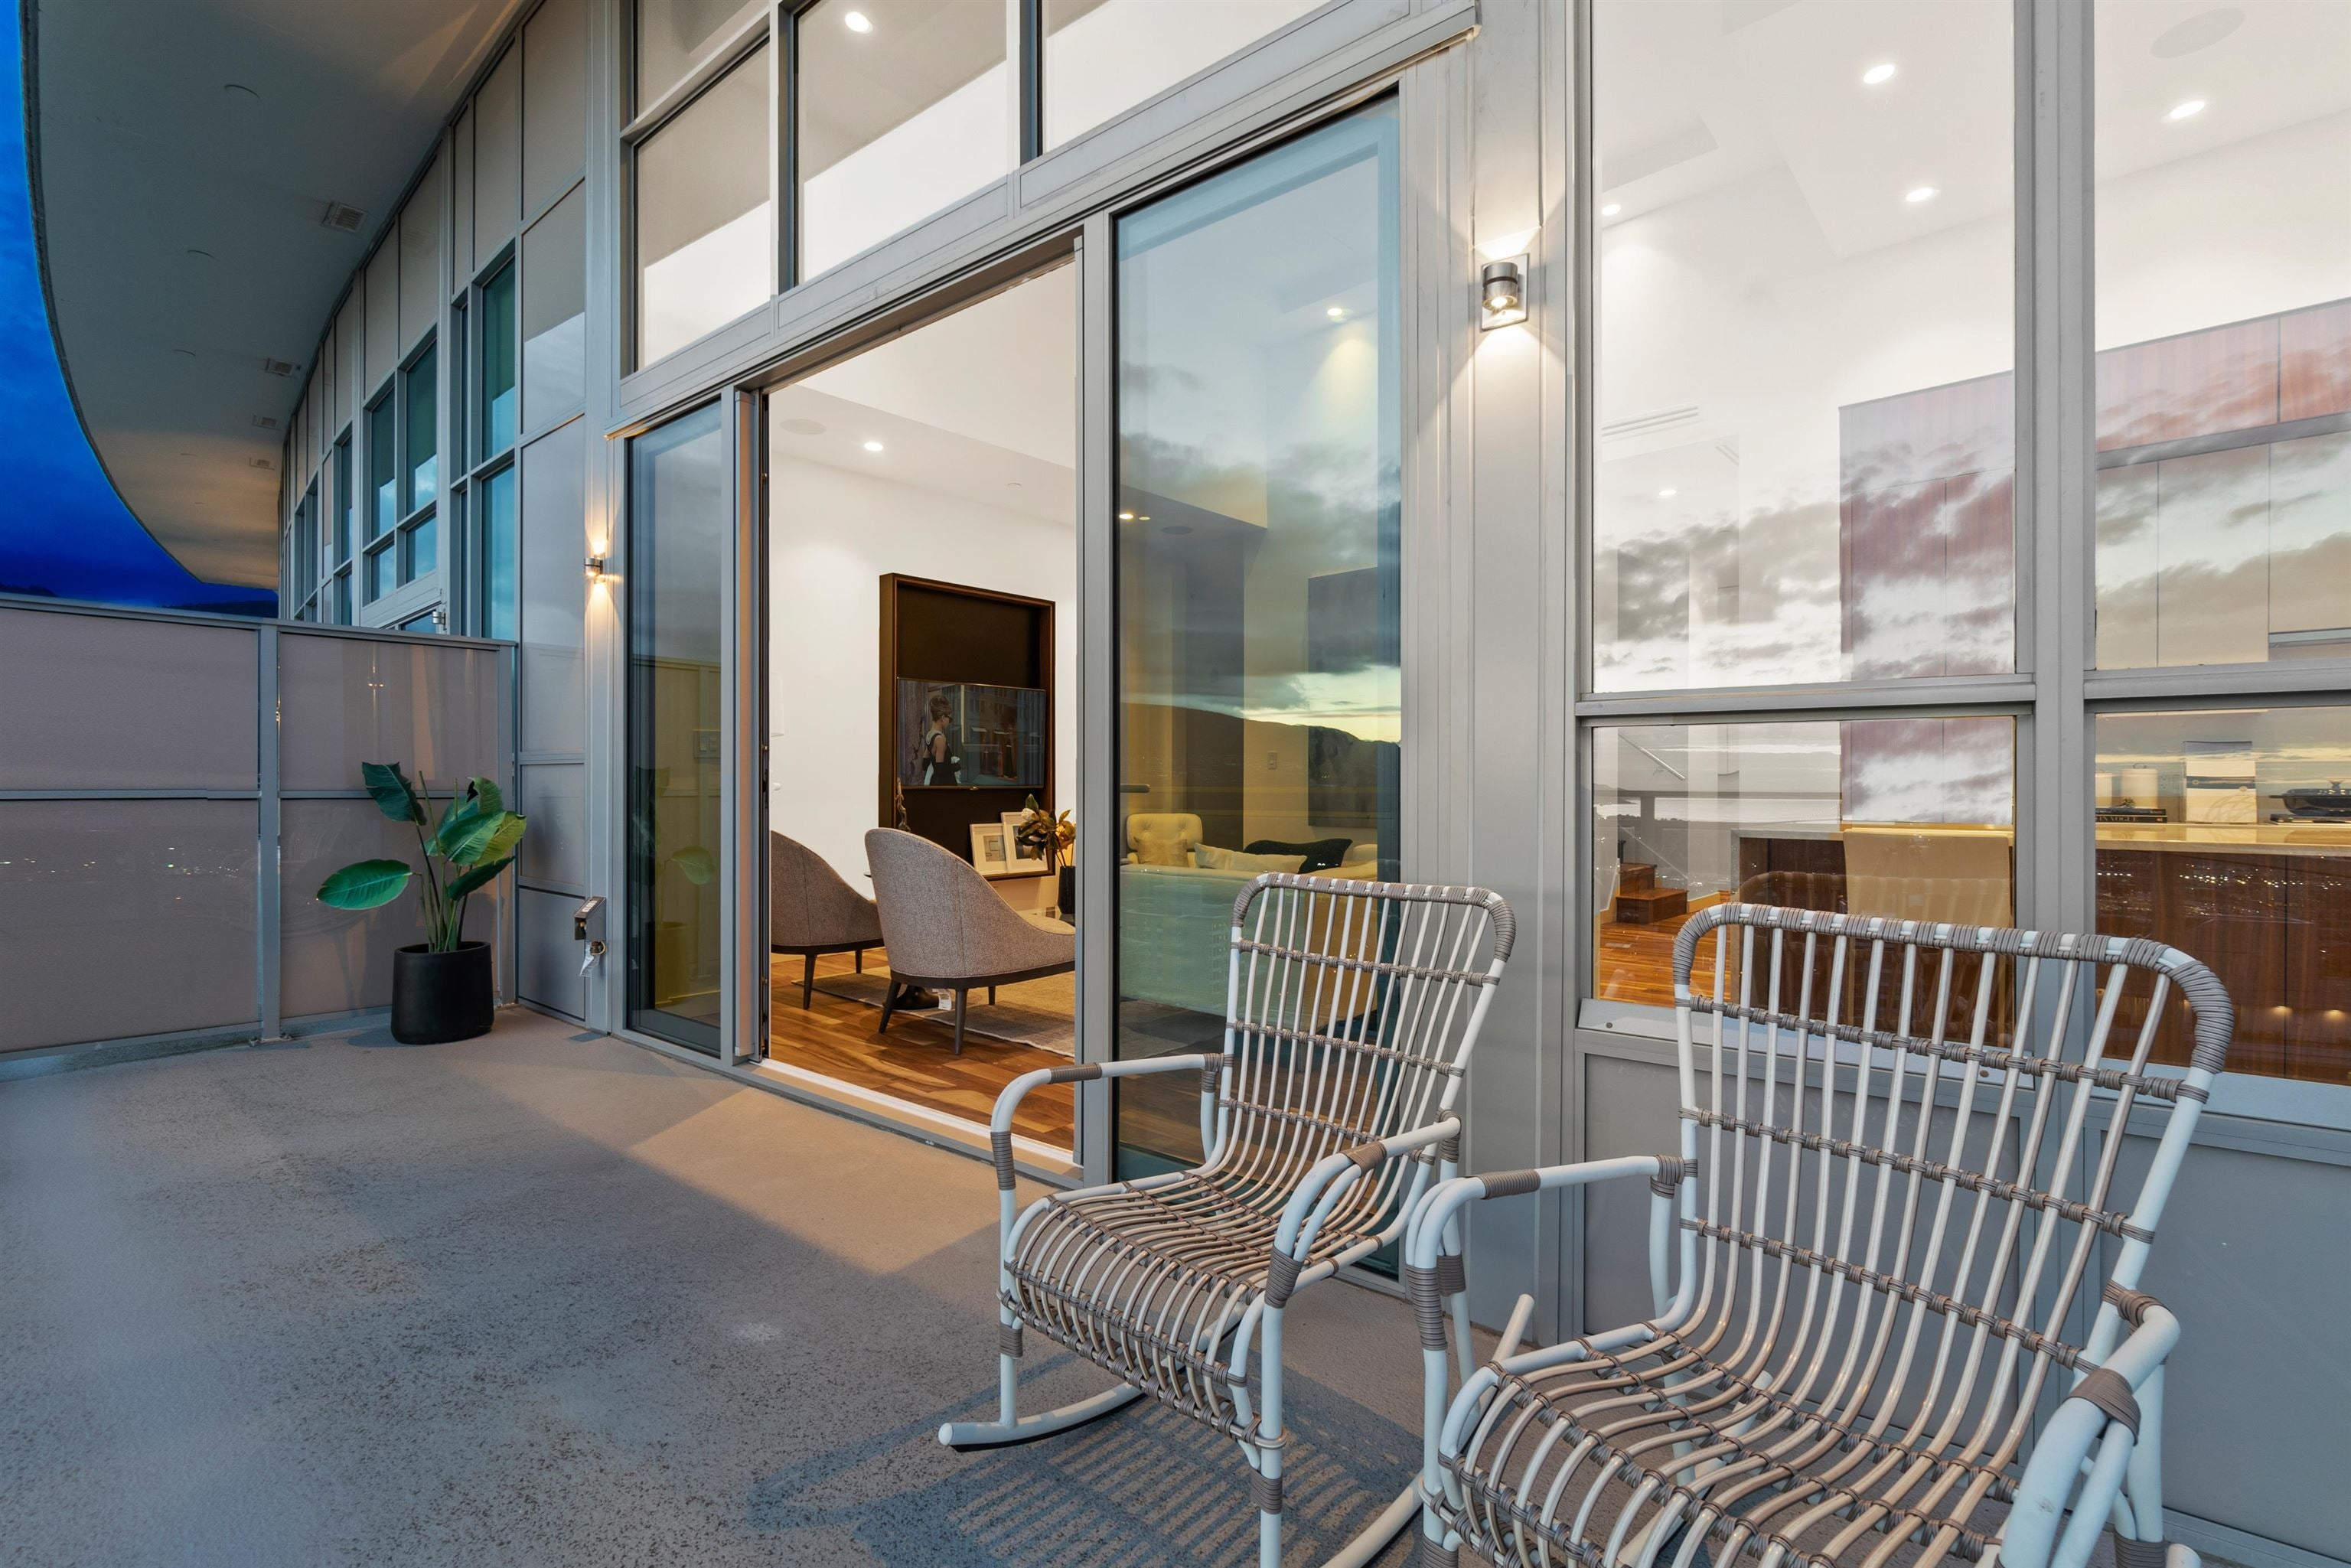 2402 125 E 14TH STREET - Central Lonsdale Apartment/Condo for sale, 2 Bedrooms (R2617870) - #14